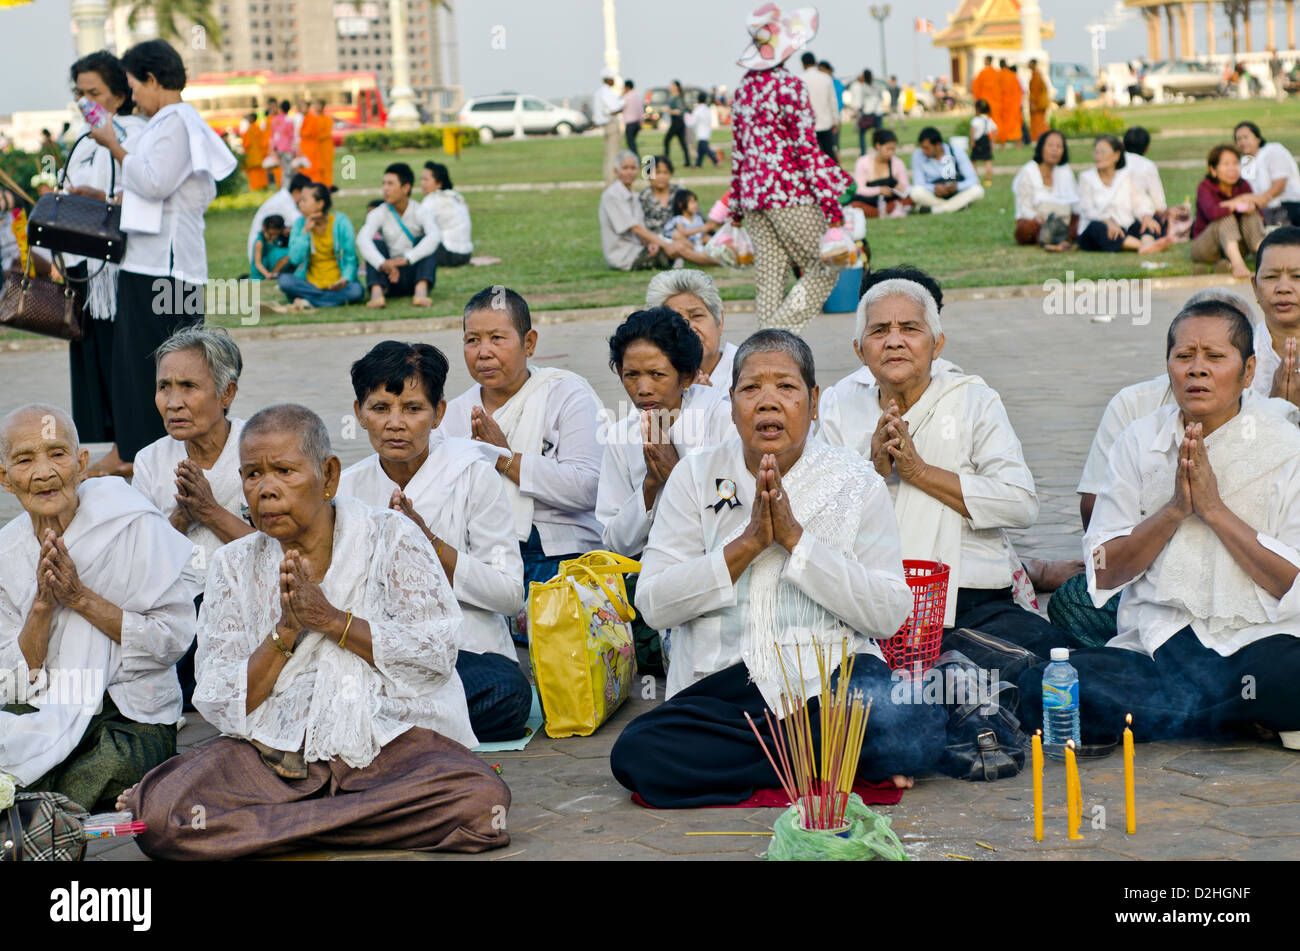 People mourn the late king Norodom Sihanouk in front of the Royal Palace in Phnom Penh Stock Photo